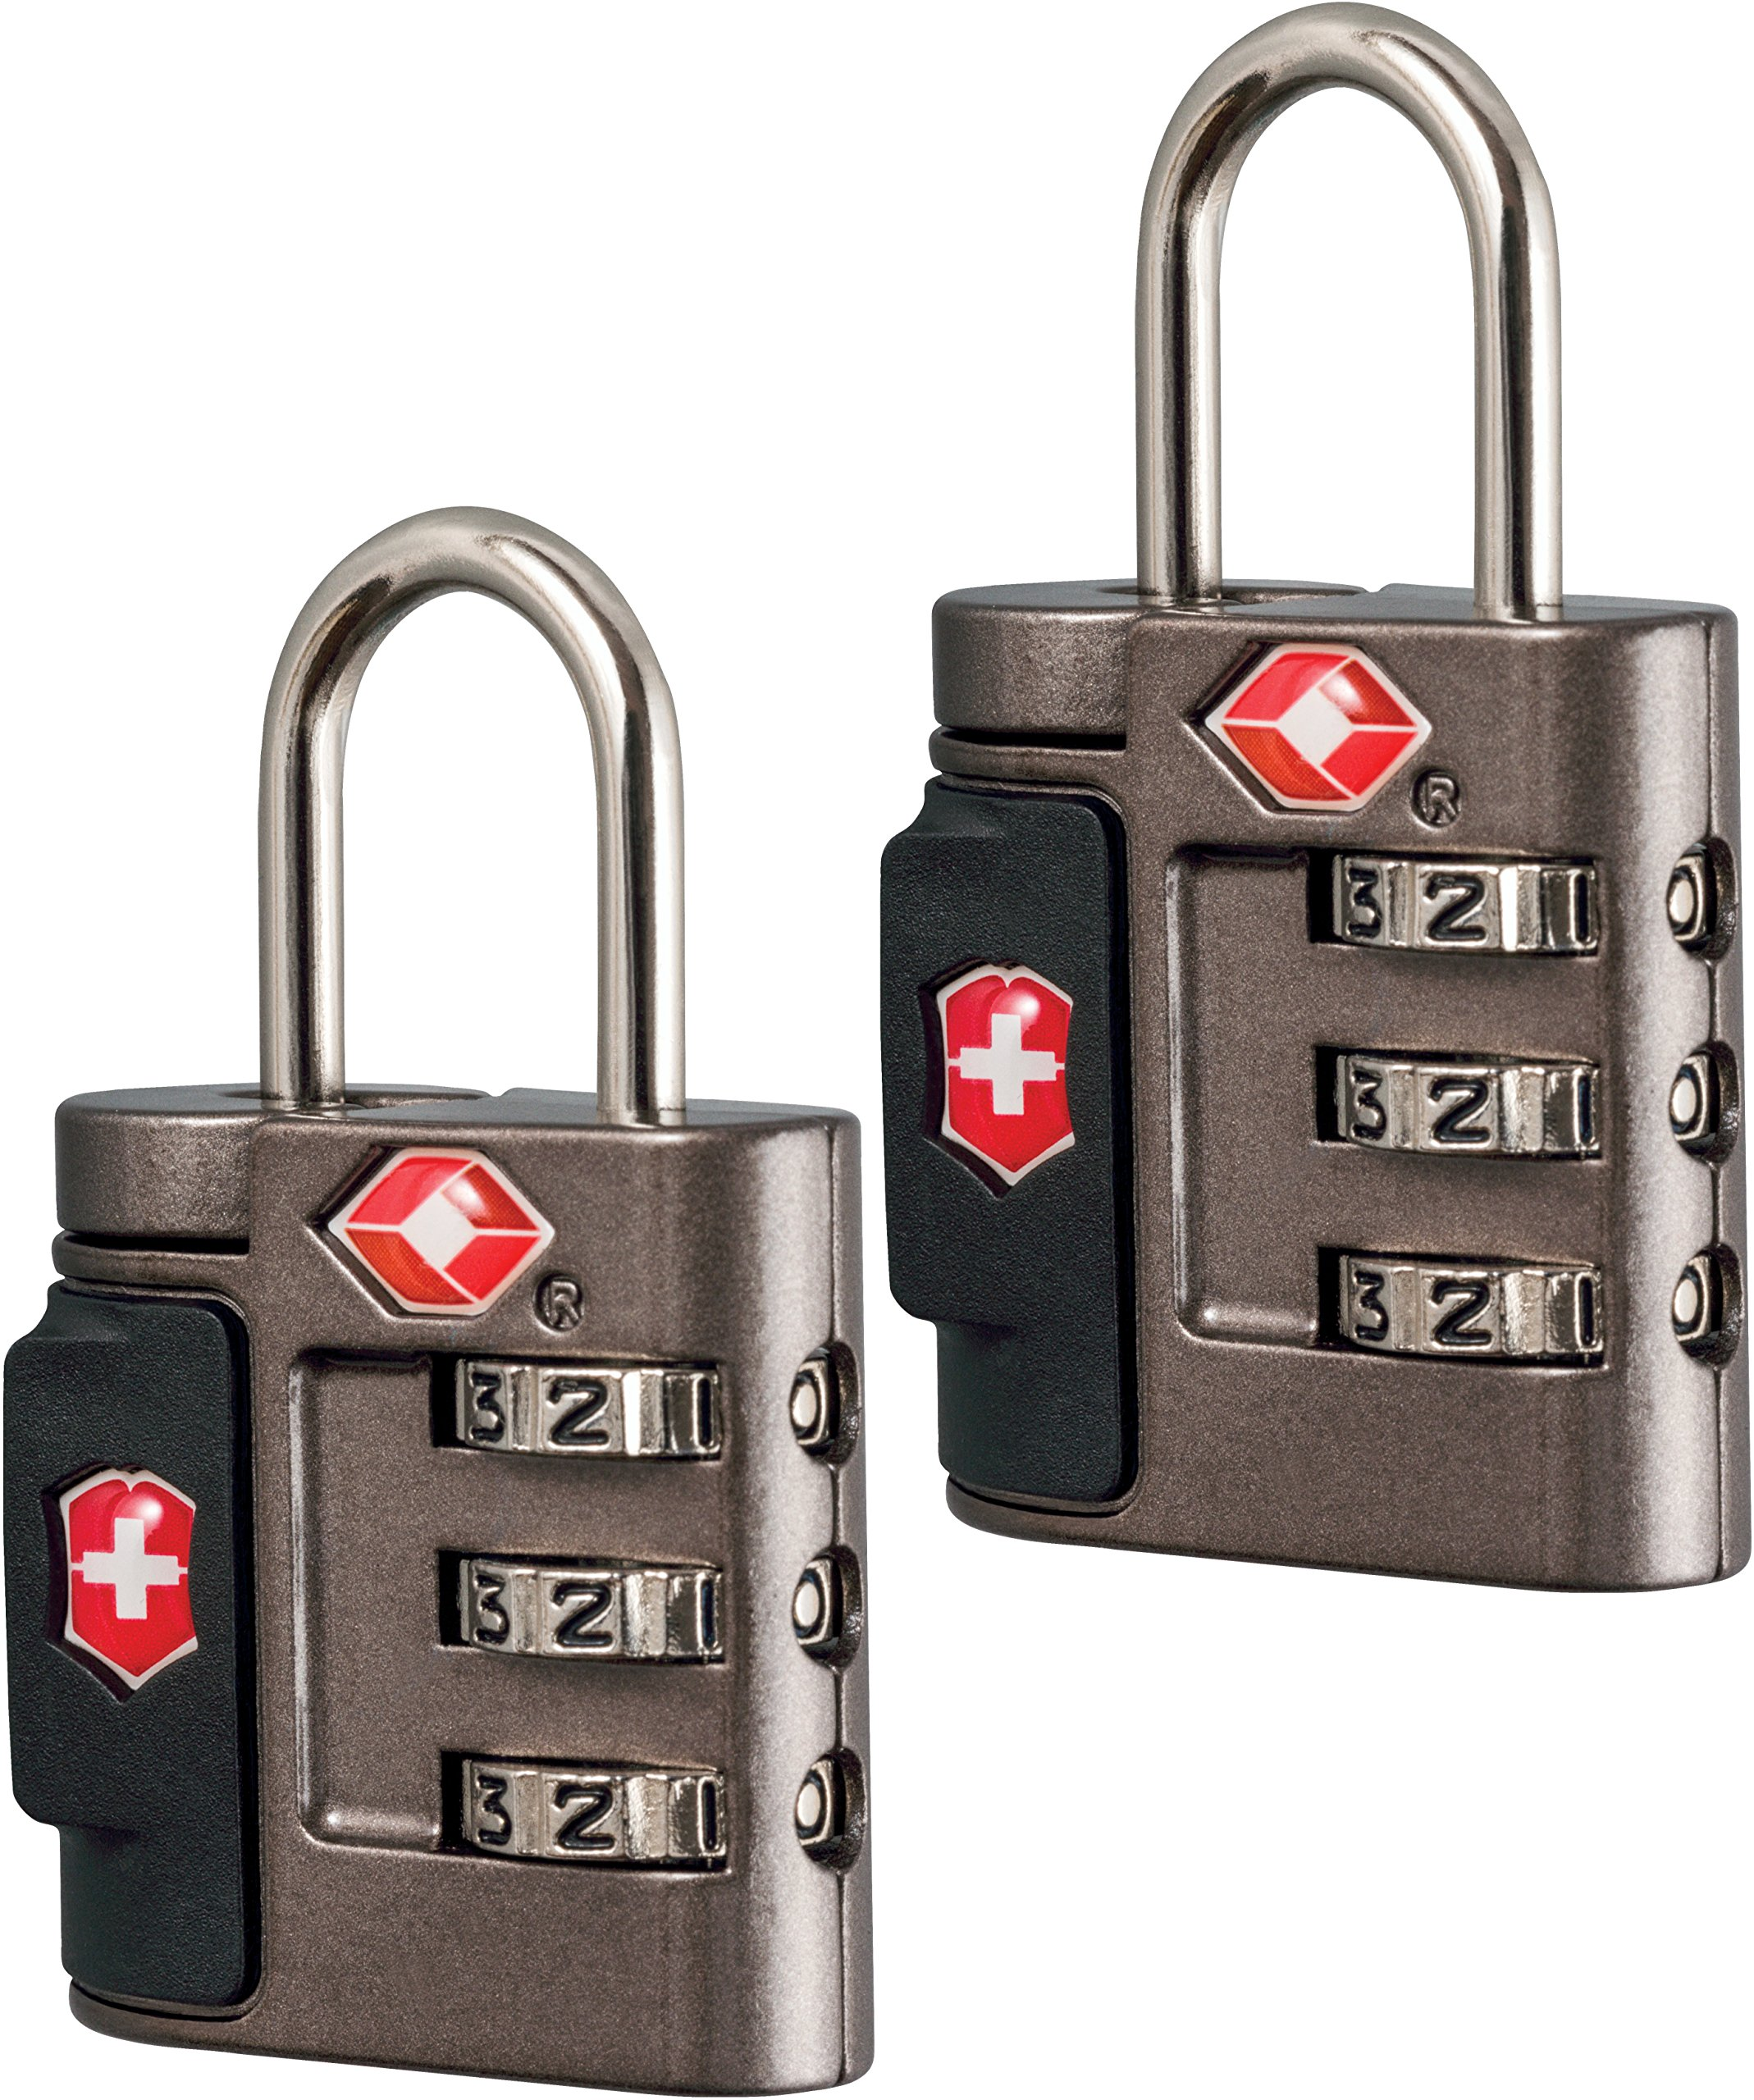 Victorinox Travel Sentry Approved Combination Lock Set, Grey/Red Logo by Victorinox